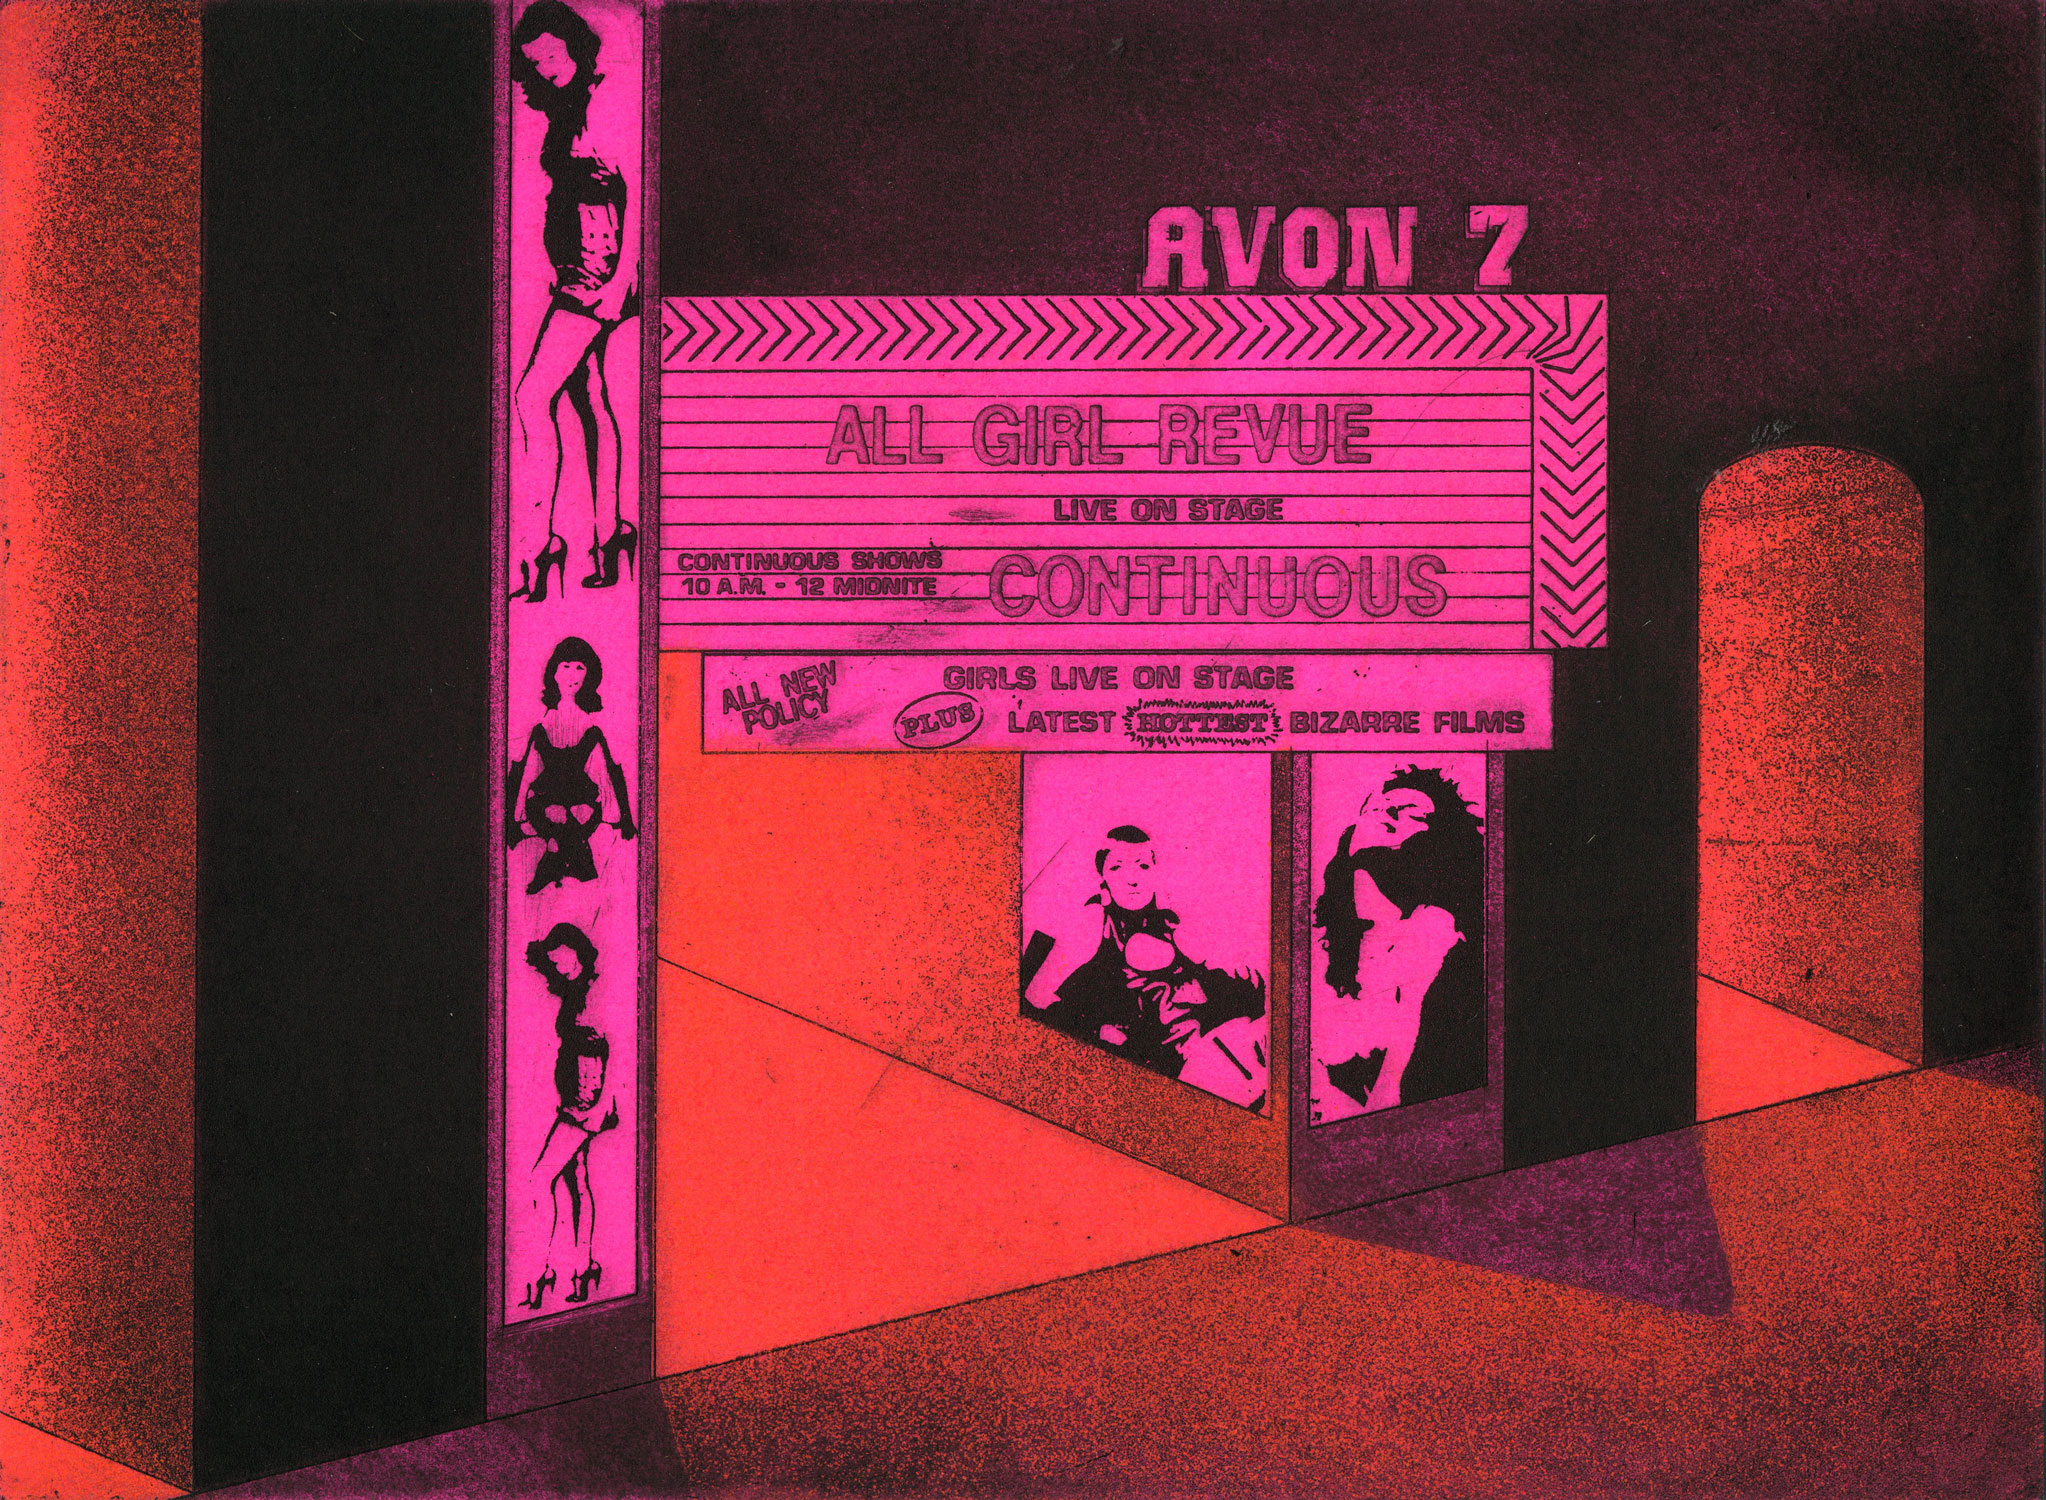 Continuous Shows: Avon 7